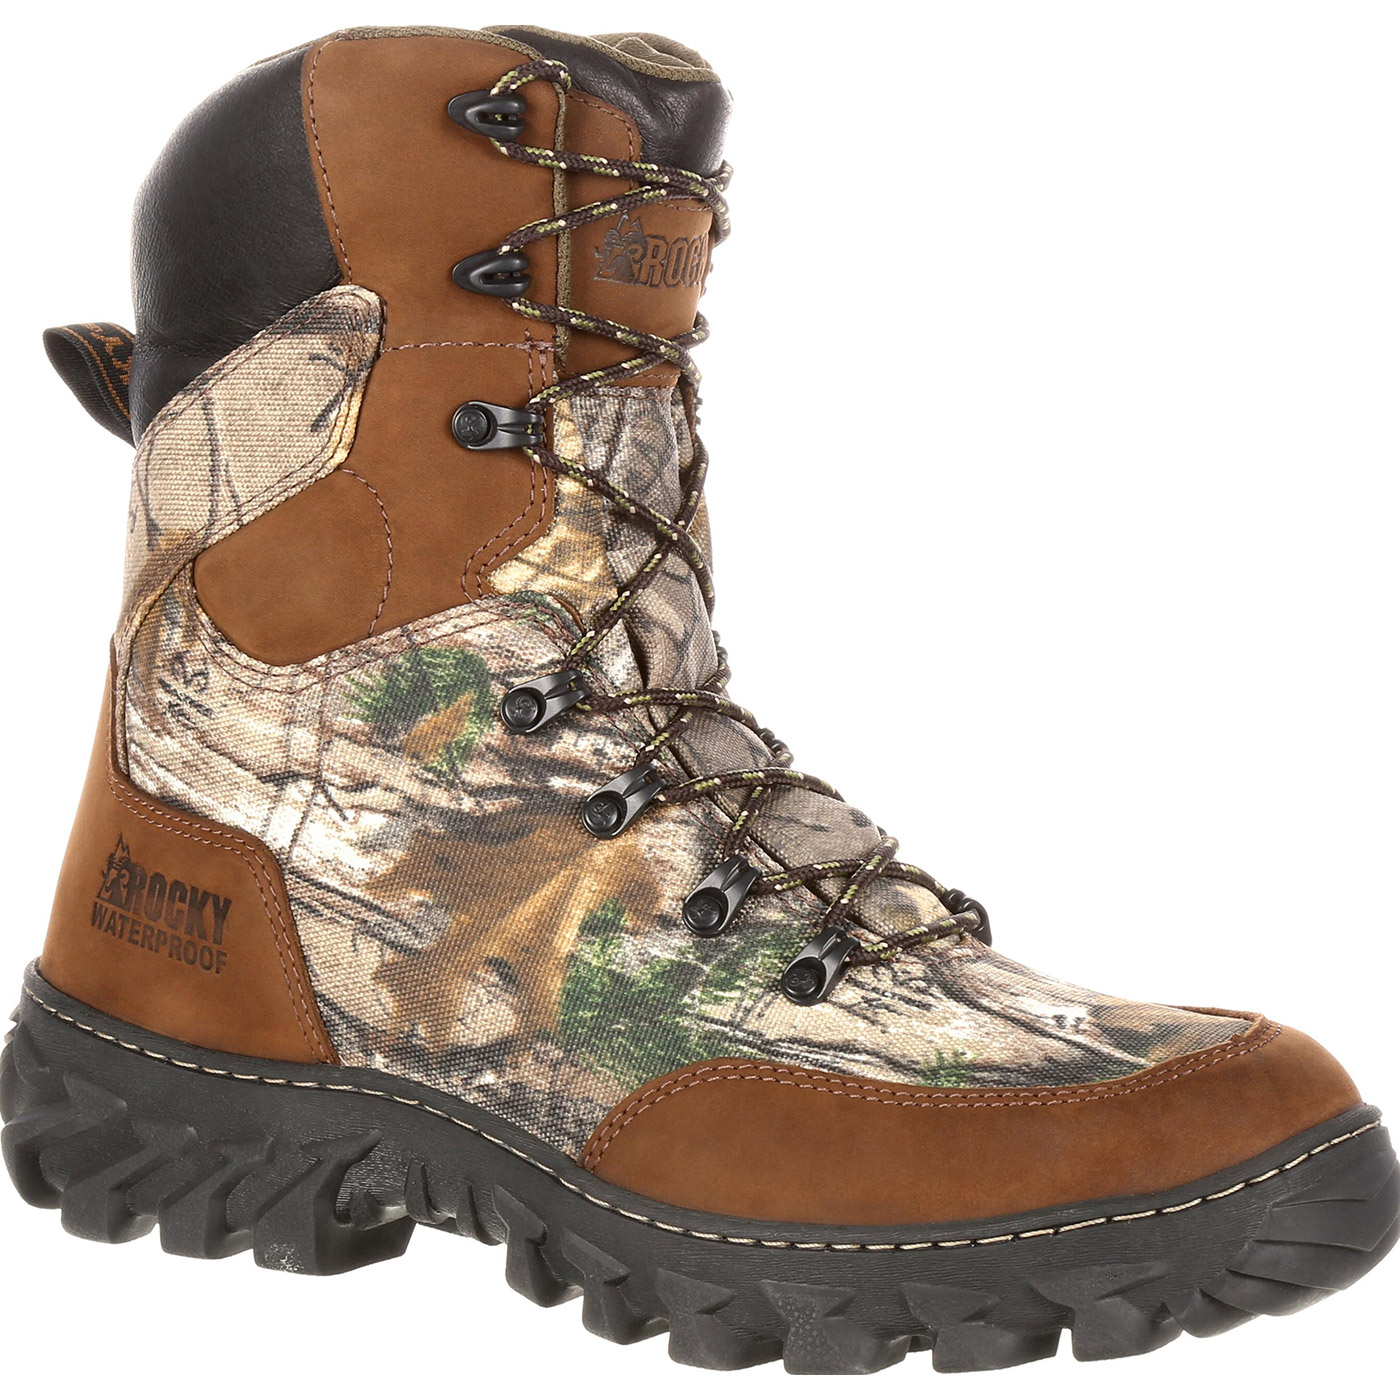 Rocky Jungle Hunter: Waterproof Insulated Outdoor Boots